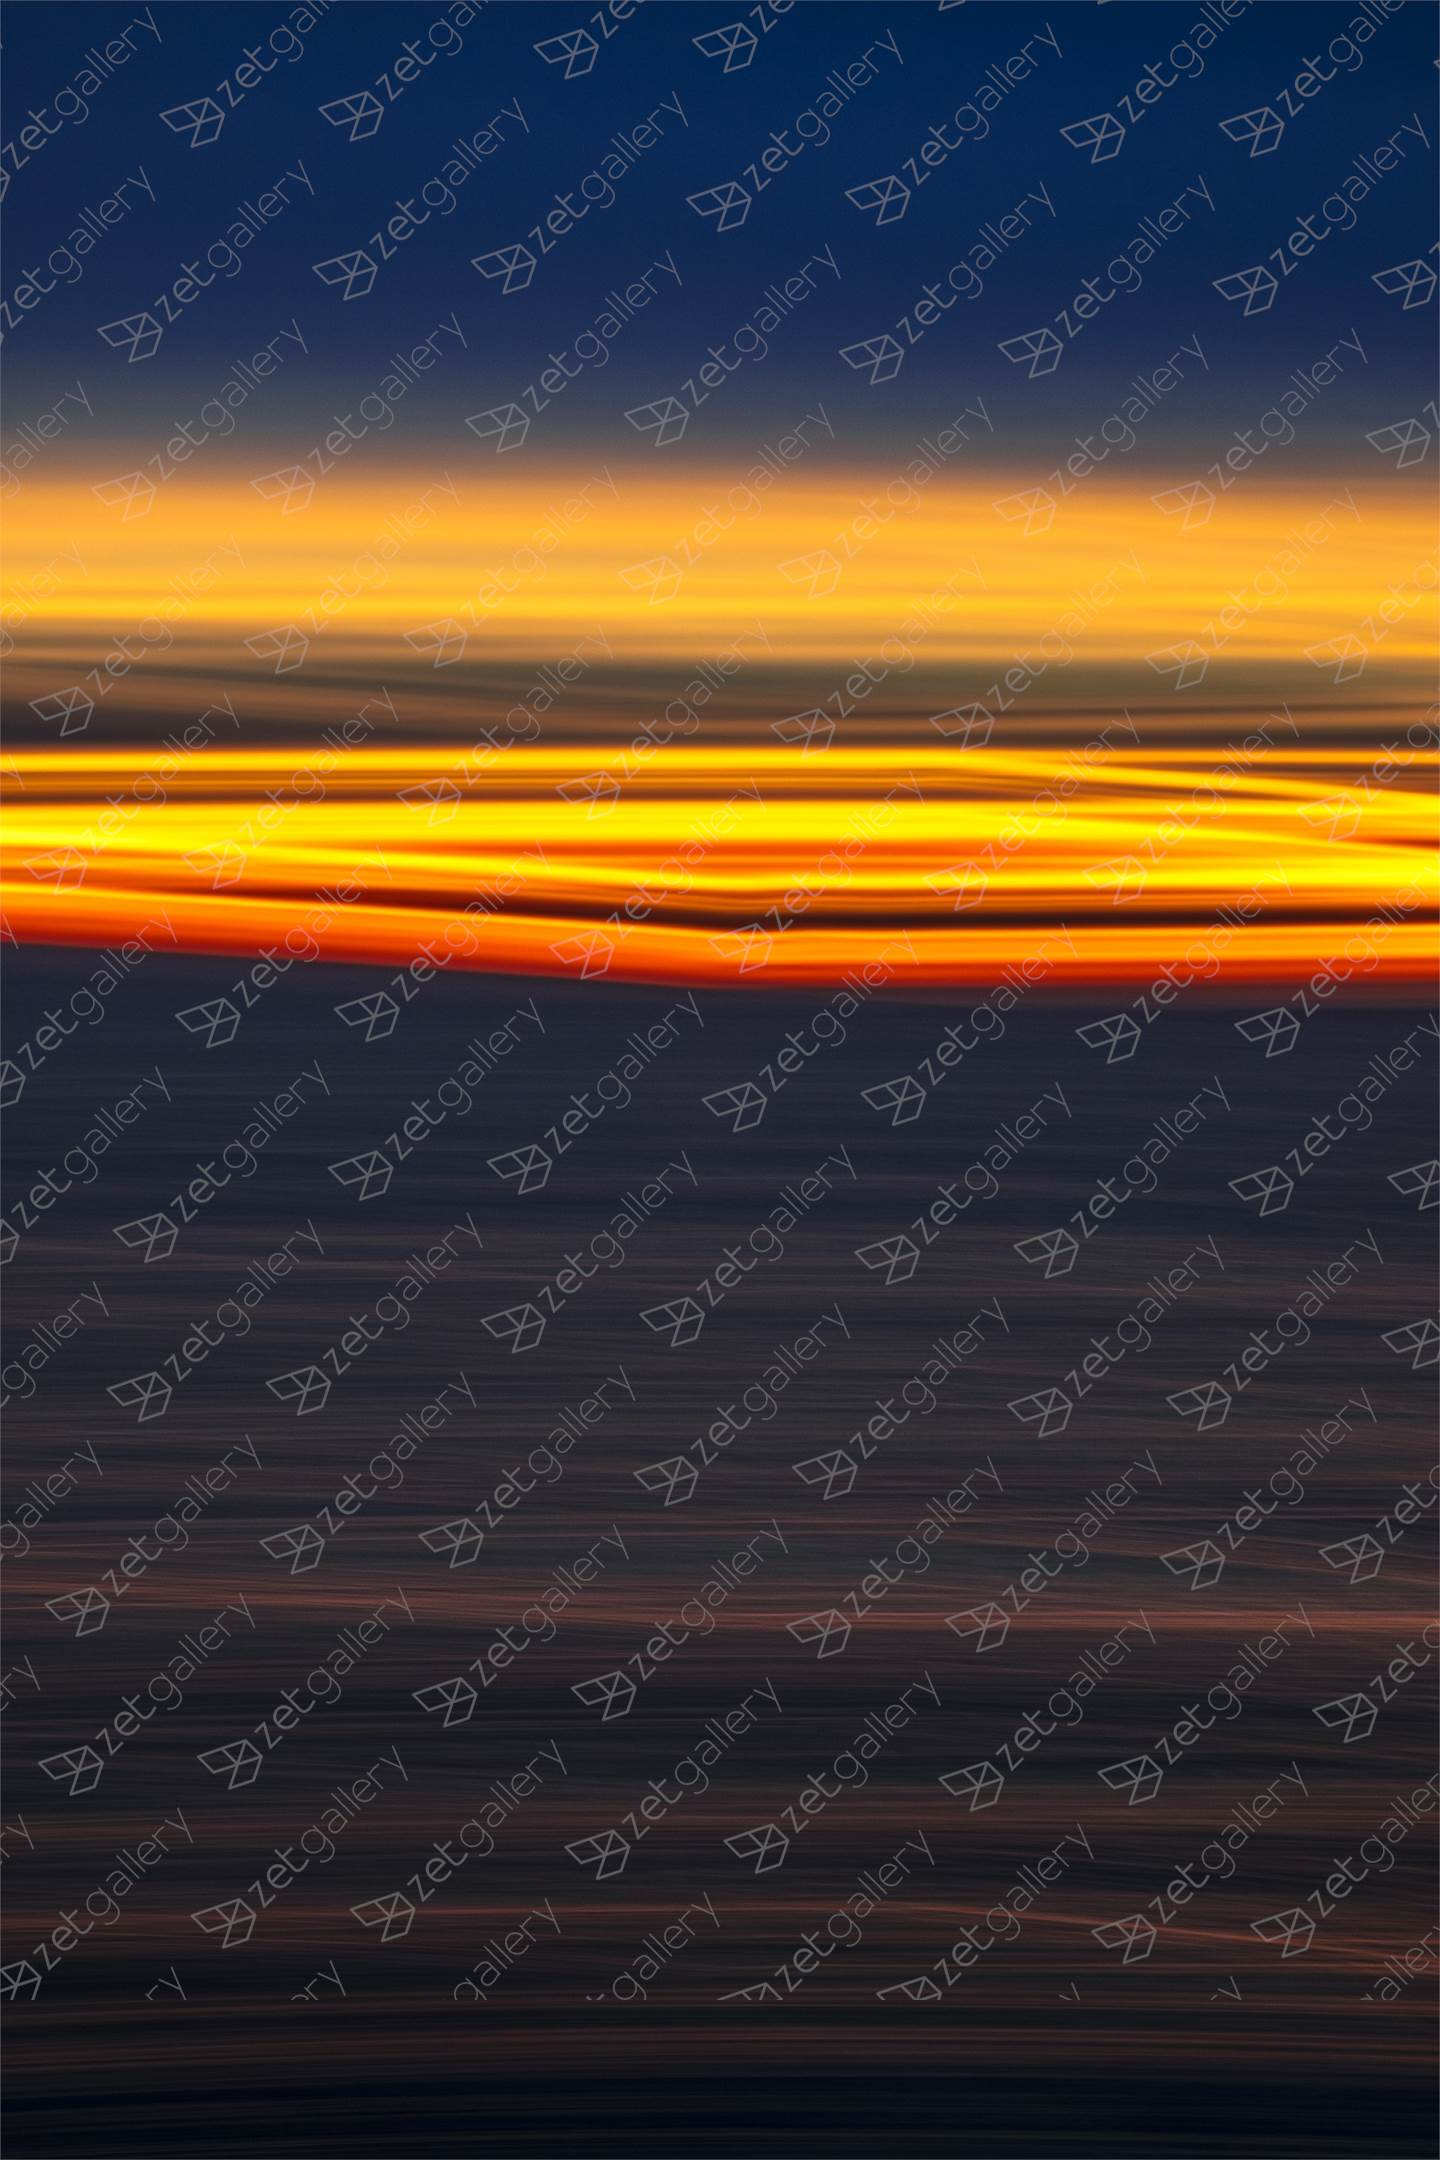 ABSTRACT SUNRISE II, Small Edition 1 of 15, original Abstract Digital Photography by Benjamin Lurie